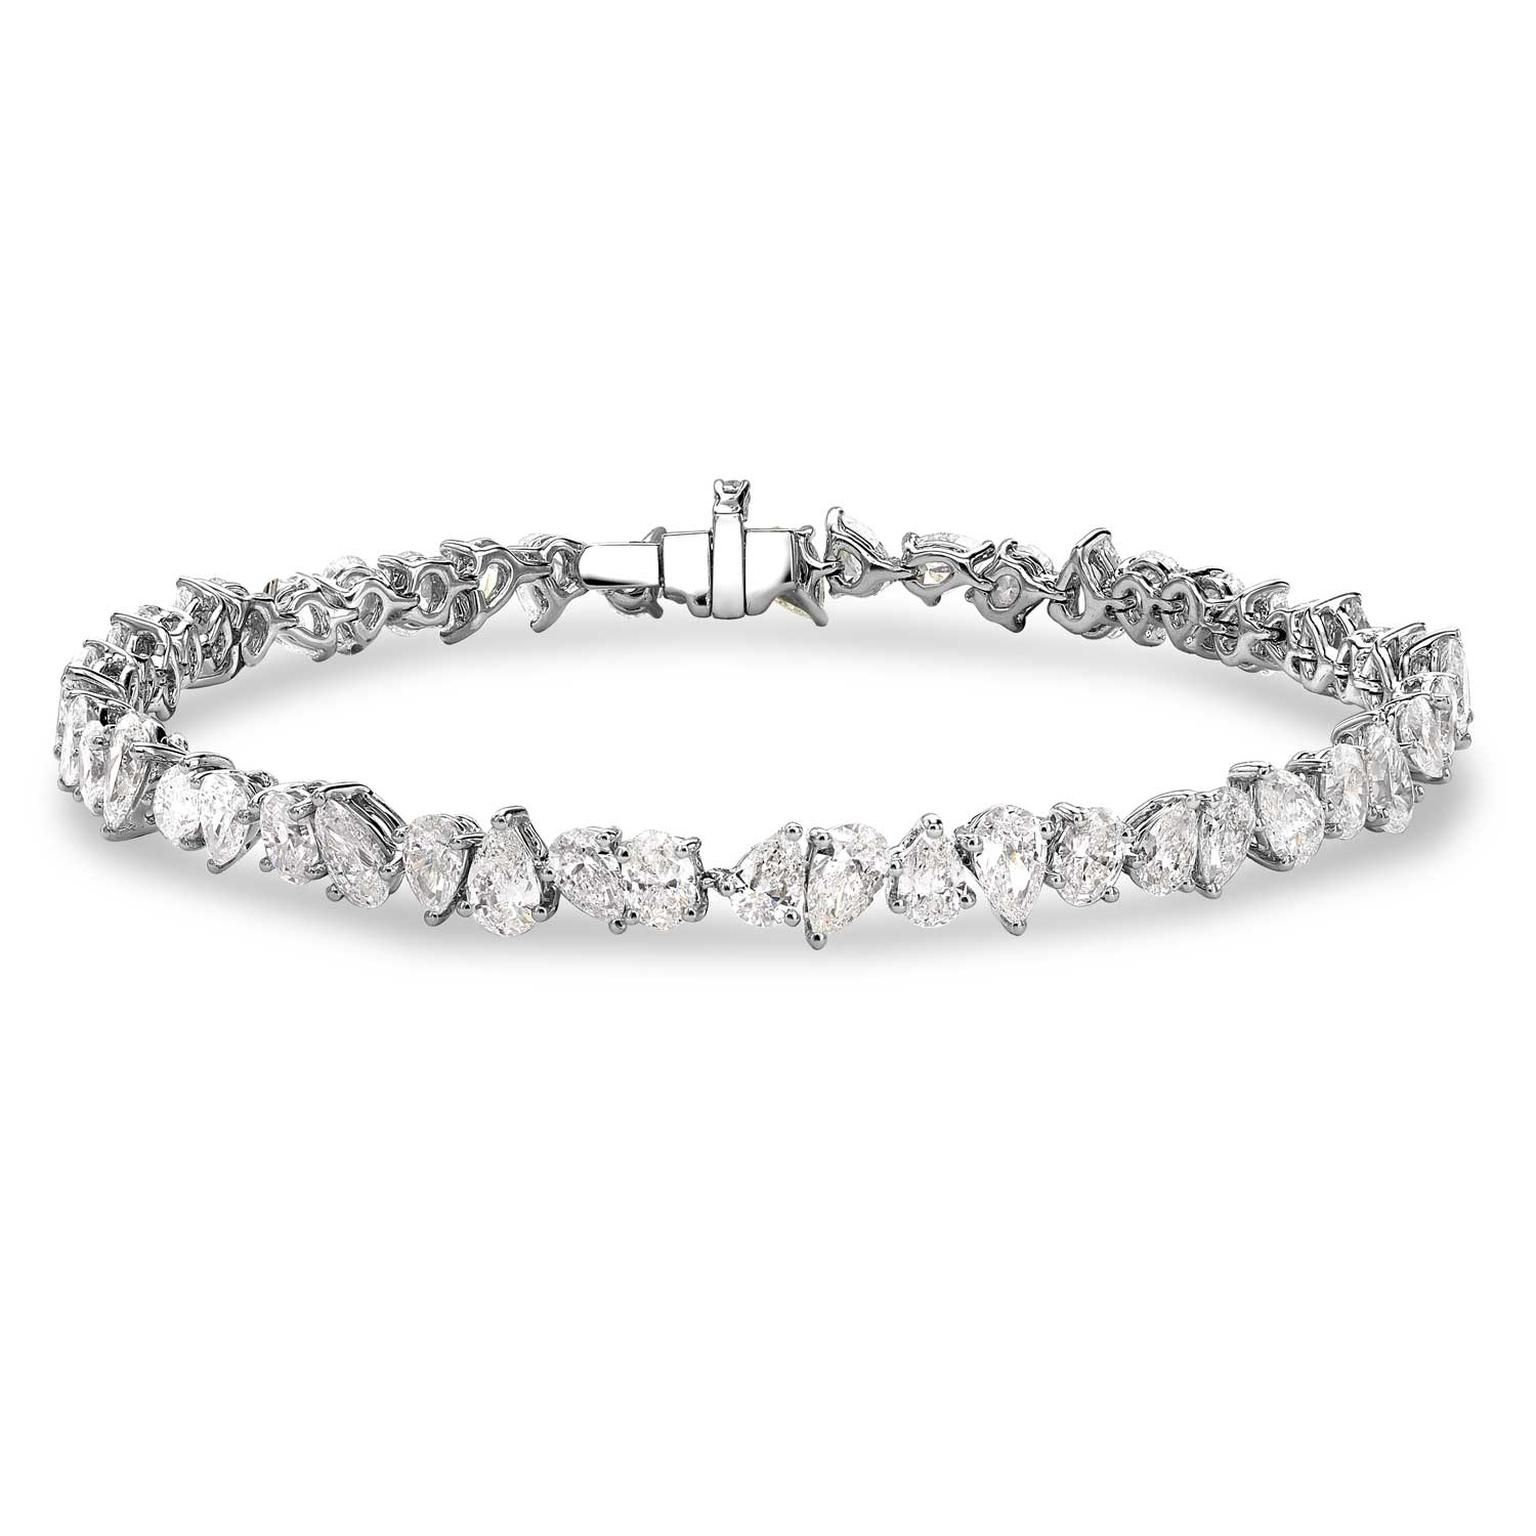 coloured hgk bracelet s marquise diamond christies david online and christie jewels morris